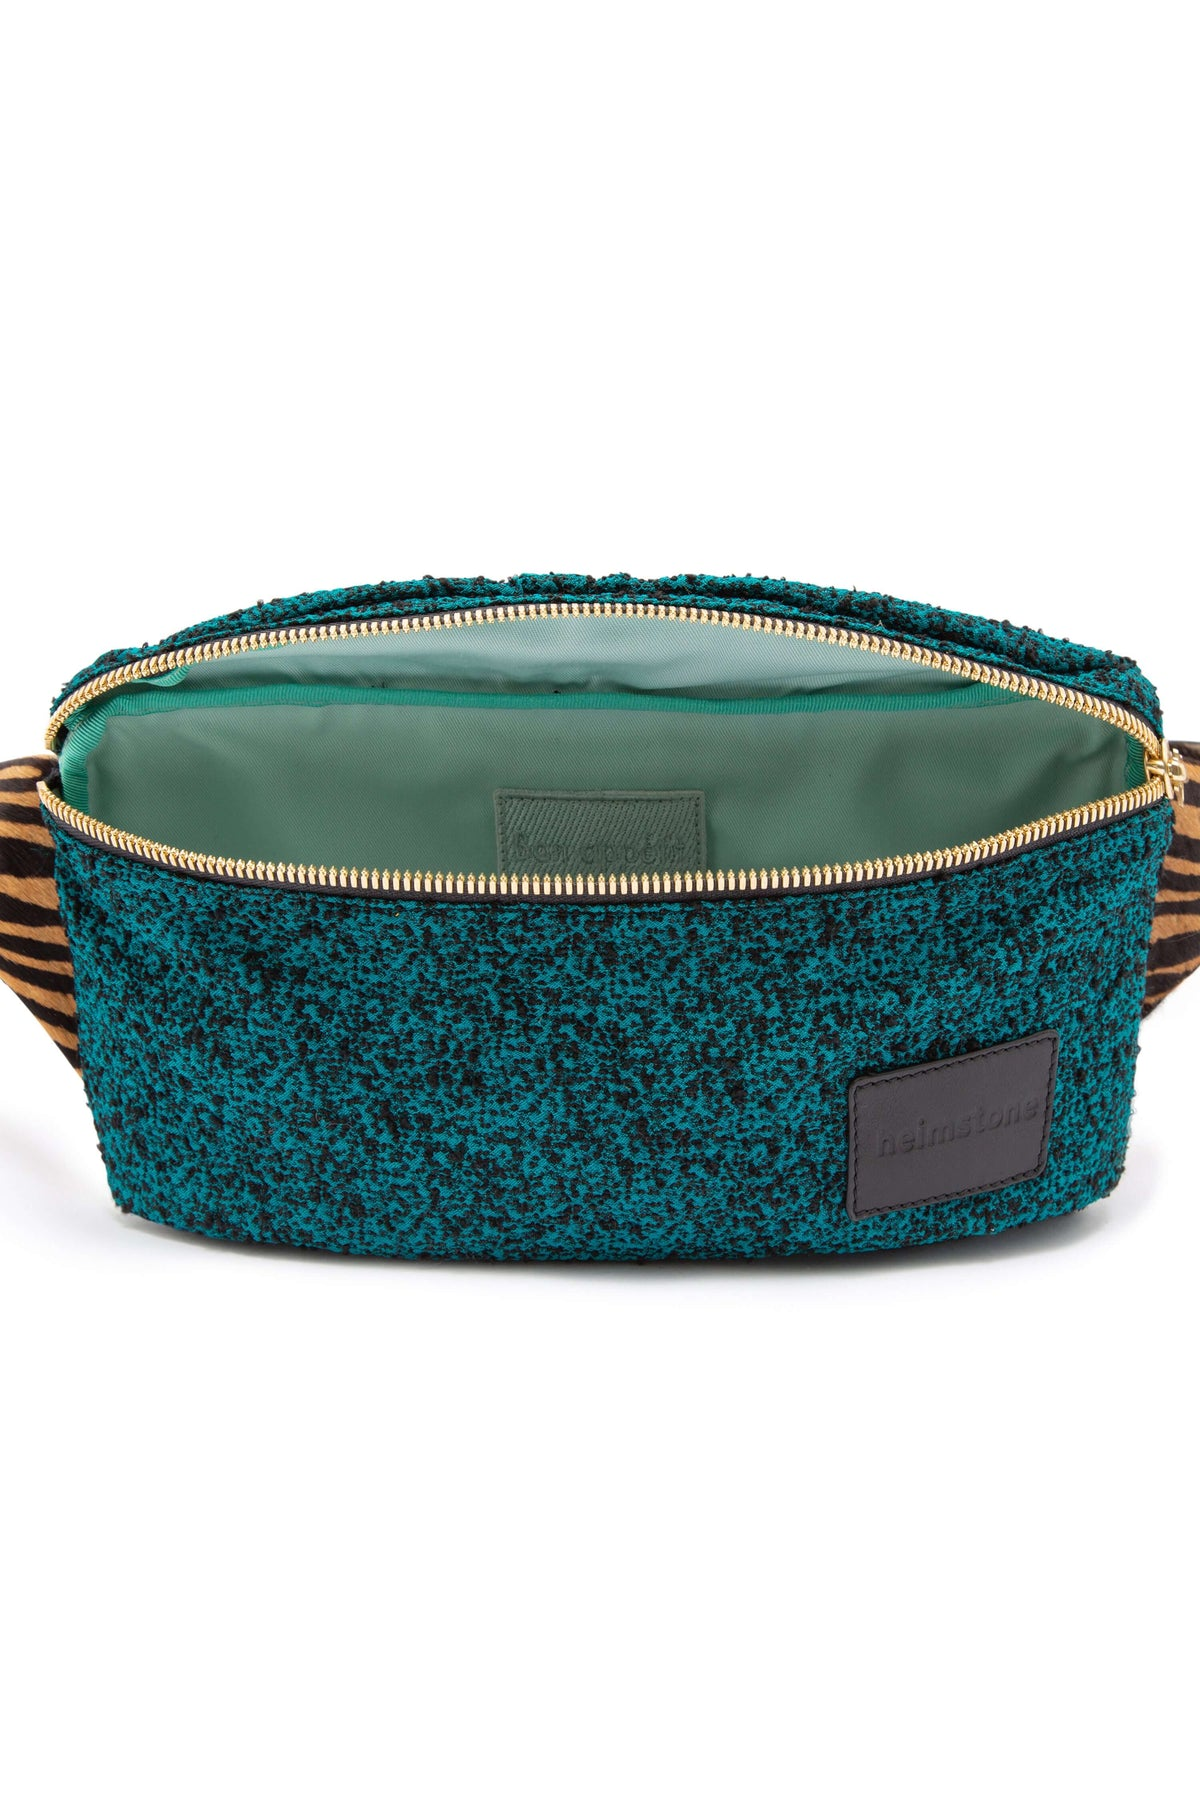 Fanny pack in drops fabric & tiger printed leather